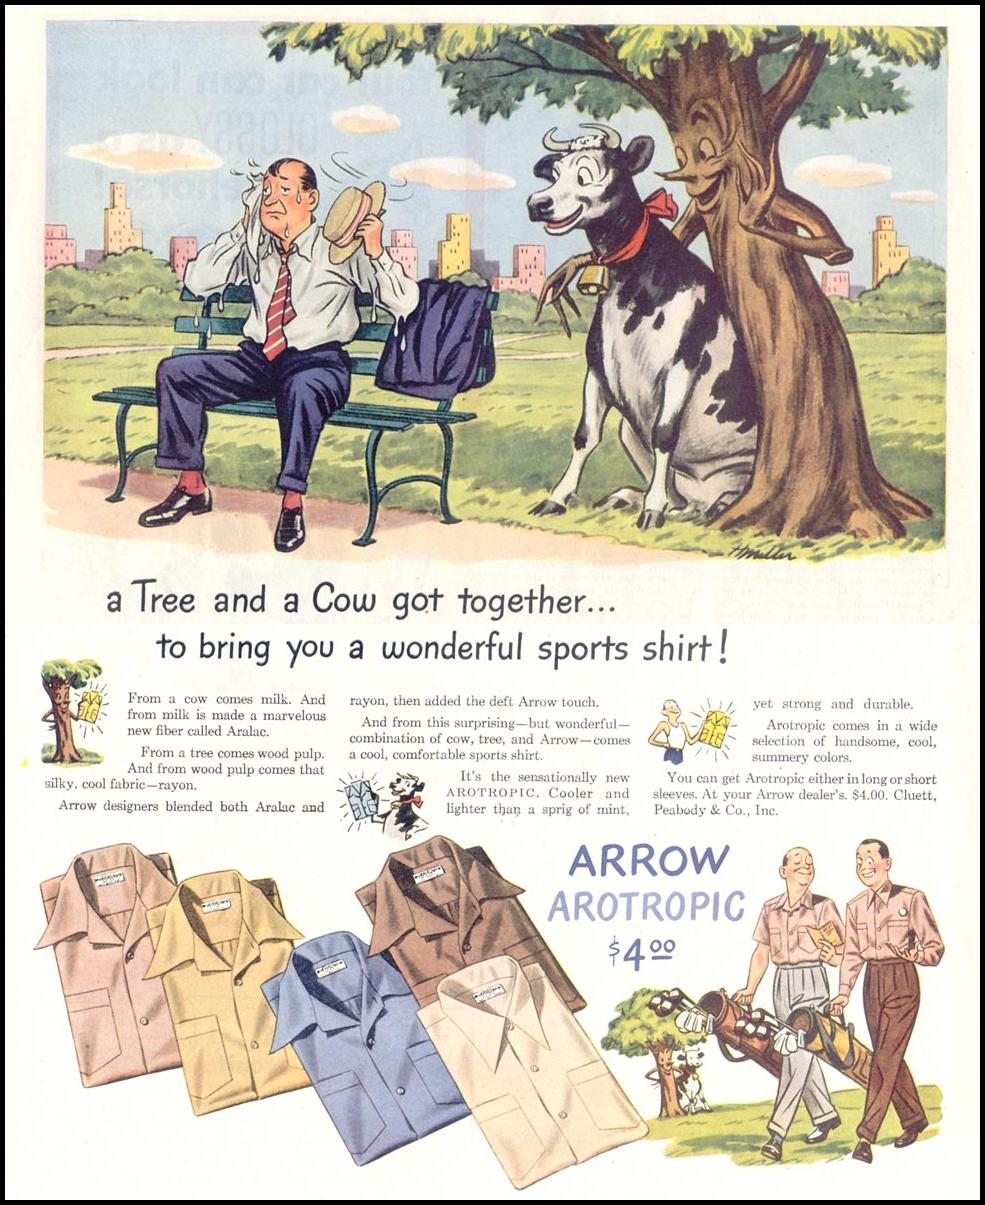 ARROW AROTROPIC ARALAC SPORTS SHIRTS SATURDAY EVENING POST 05/19/1945 p. 40